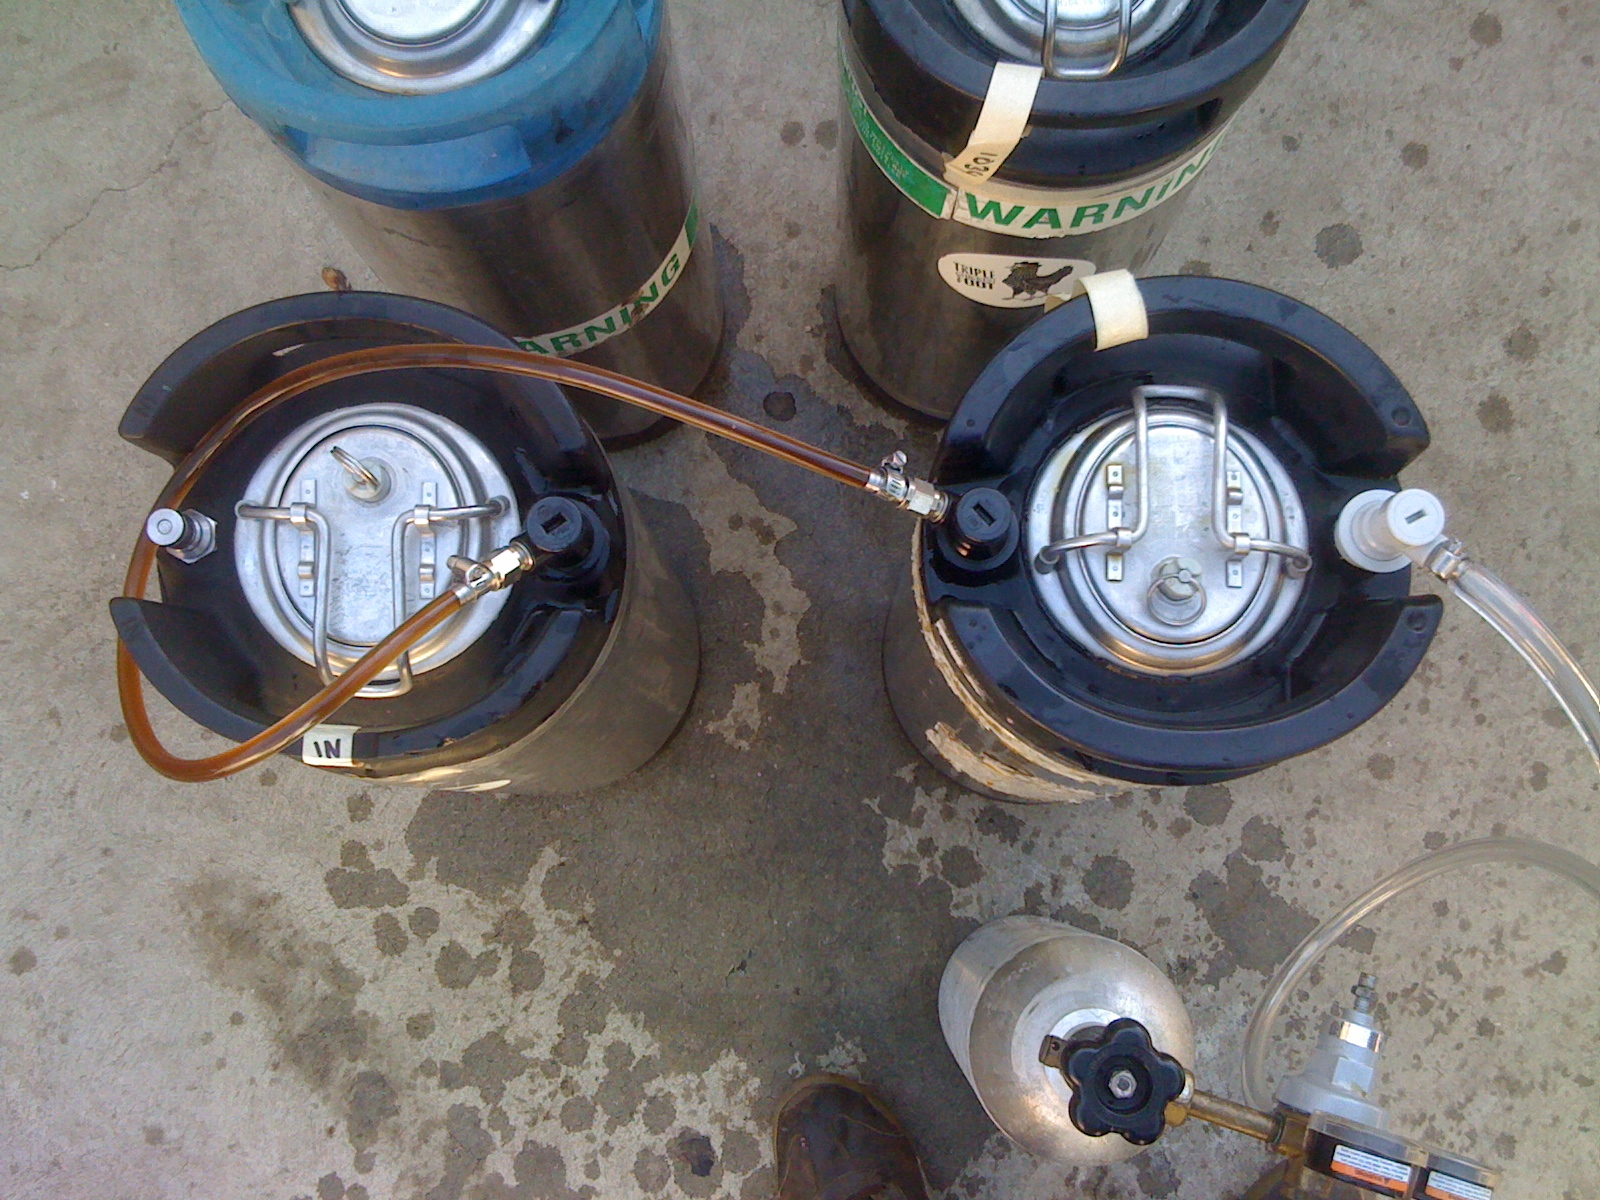 Step 3:  Push beer from full keg to empty keg using CO2.  We filled each keg with 1/2 of the high gravity and half of the lower gravity beer so that they were of equal strength/taste.